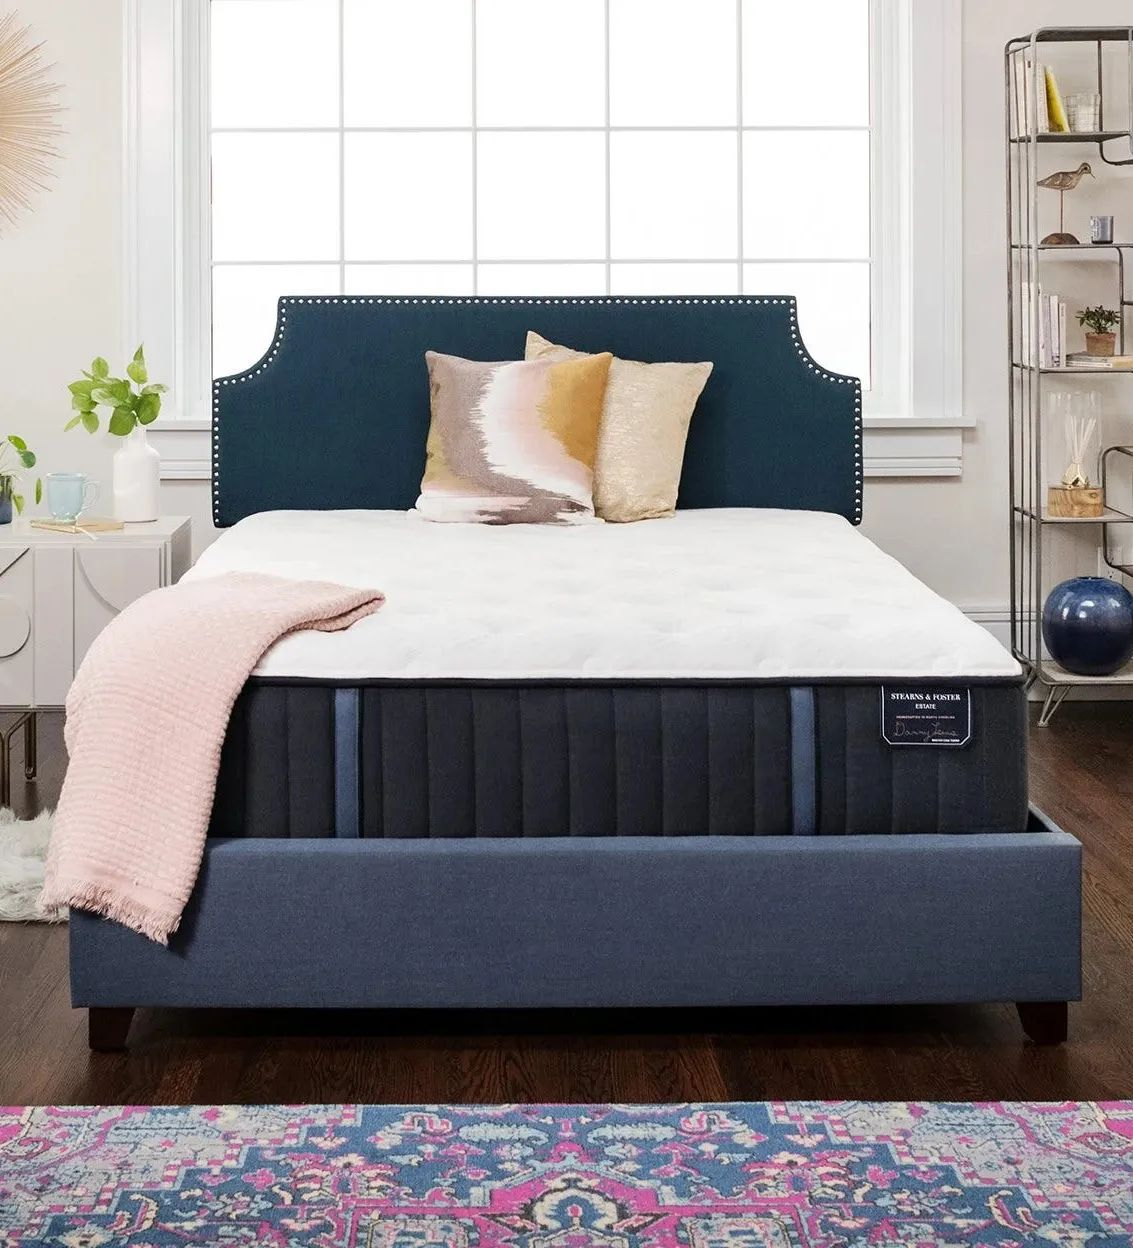 queen stearns and foster estate hurston luxury cushion firm 14 inch mattress free 200 visa gift card